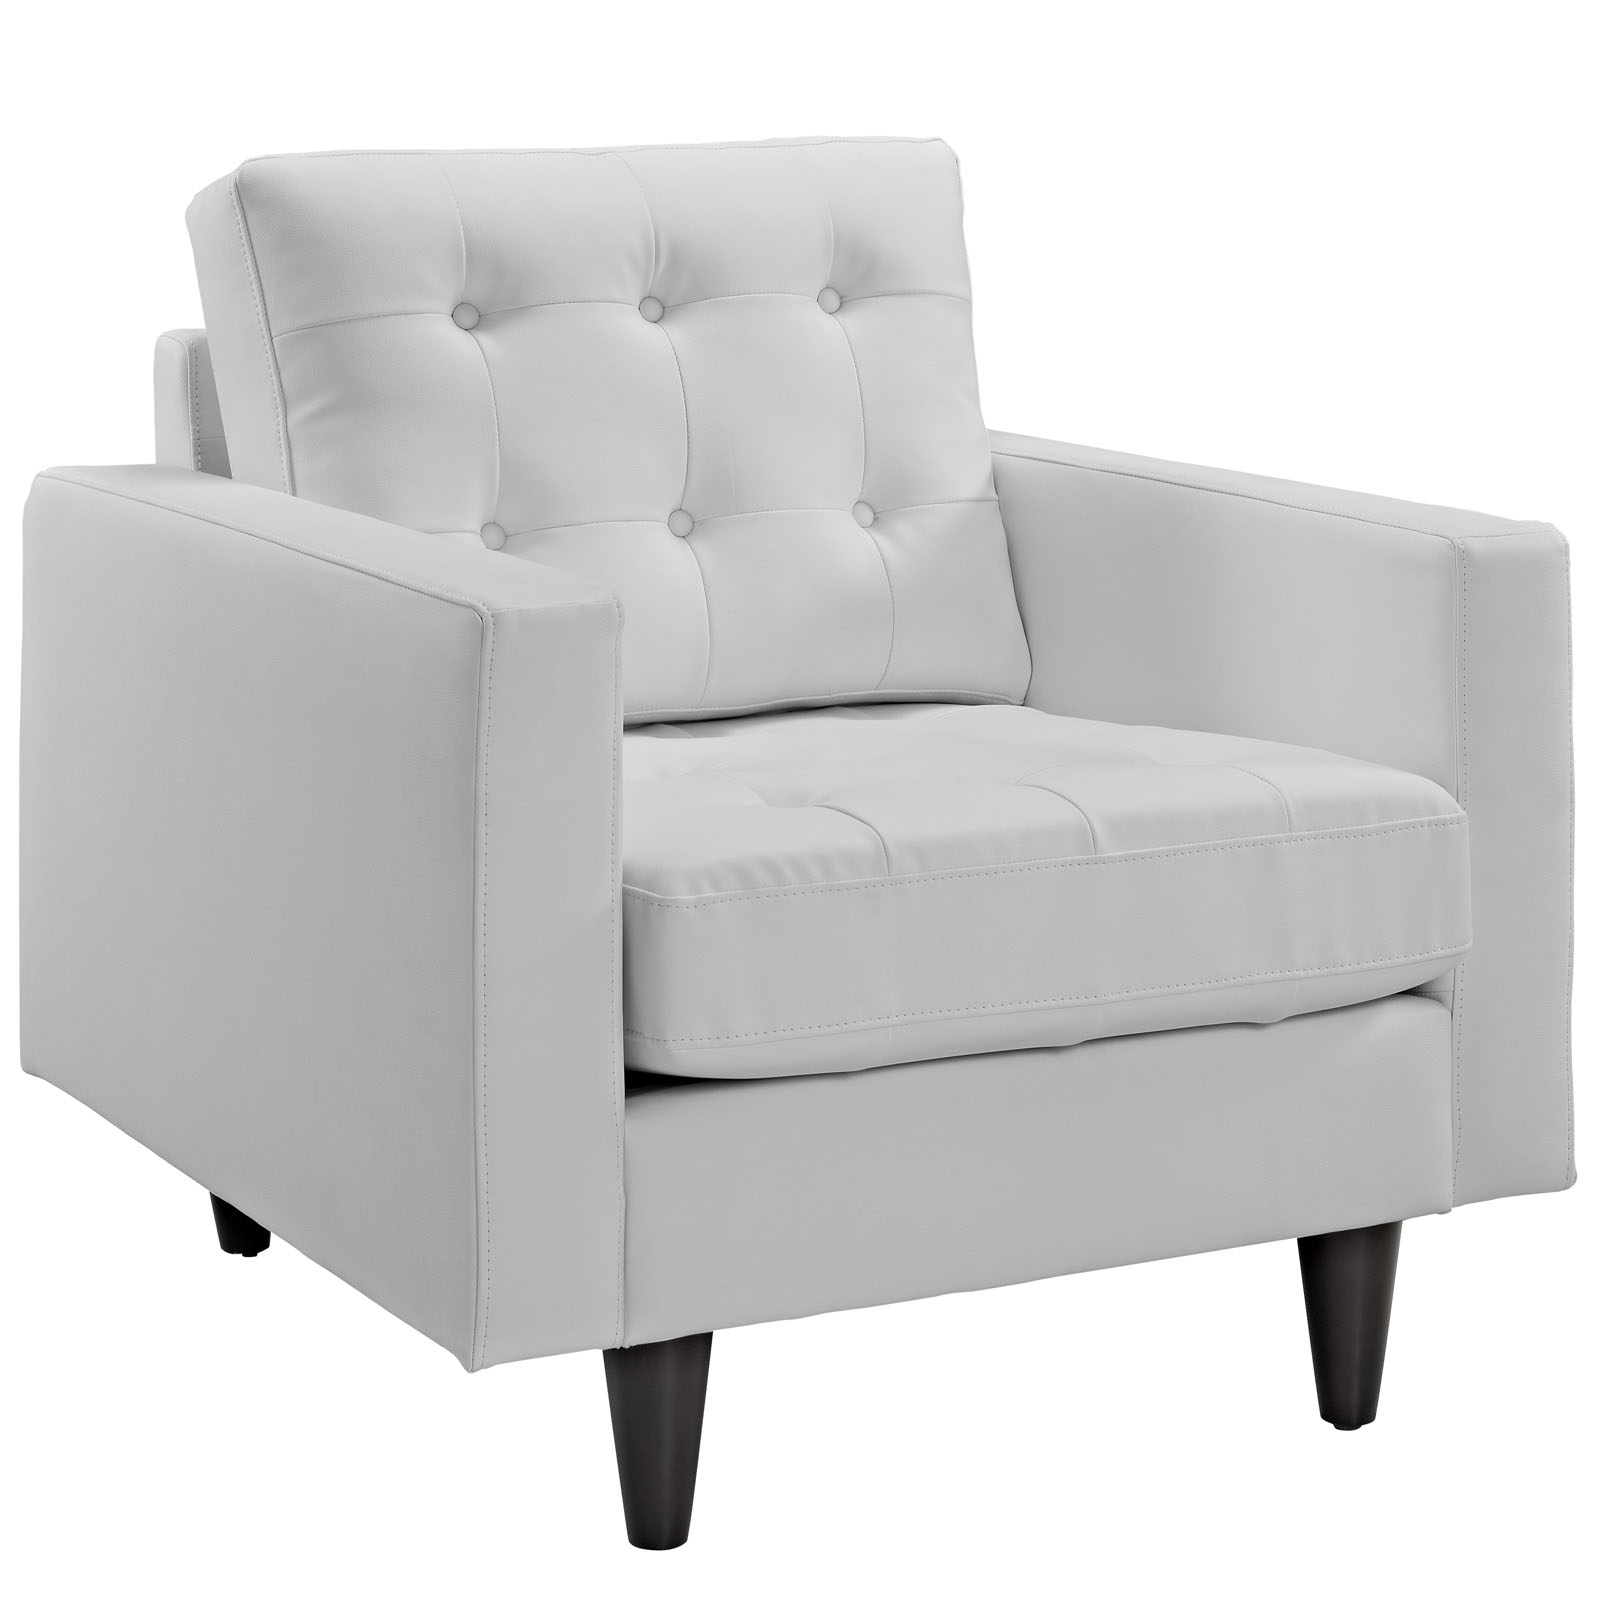 Eei 1012 Whi Within White Sofa Chairs (Image 3 of 15)